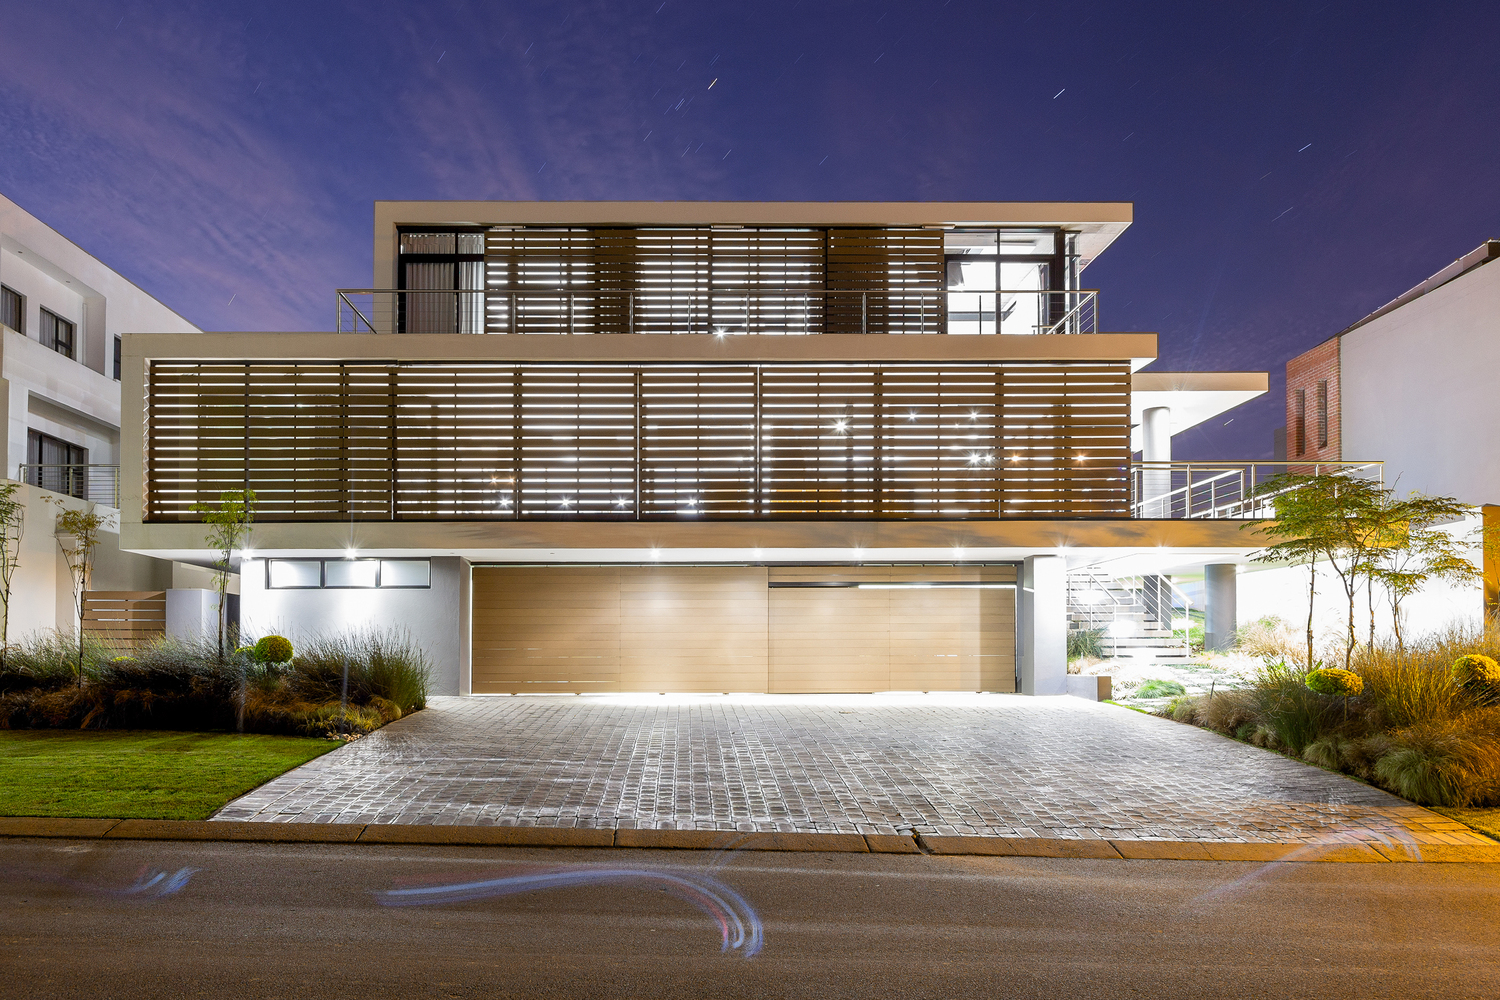 House Vista By Gottsmann Architects In Johannesburg South Africa